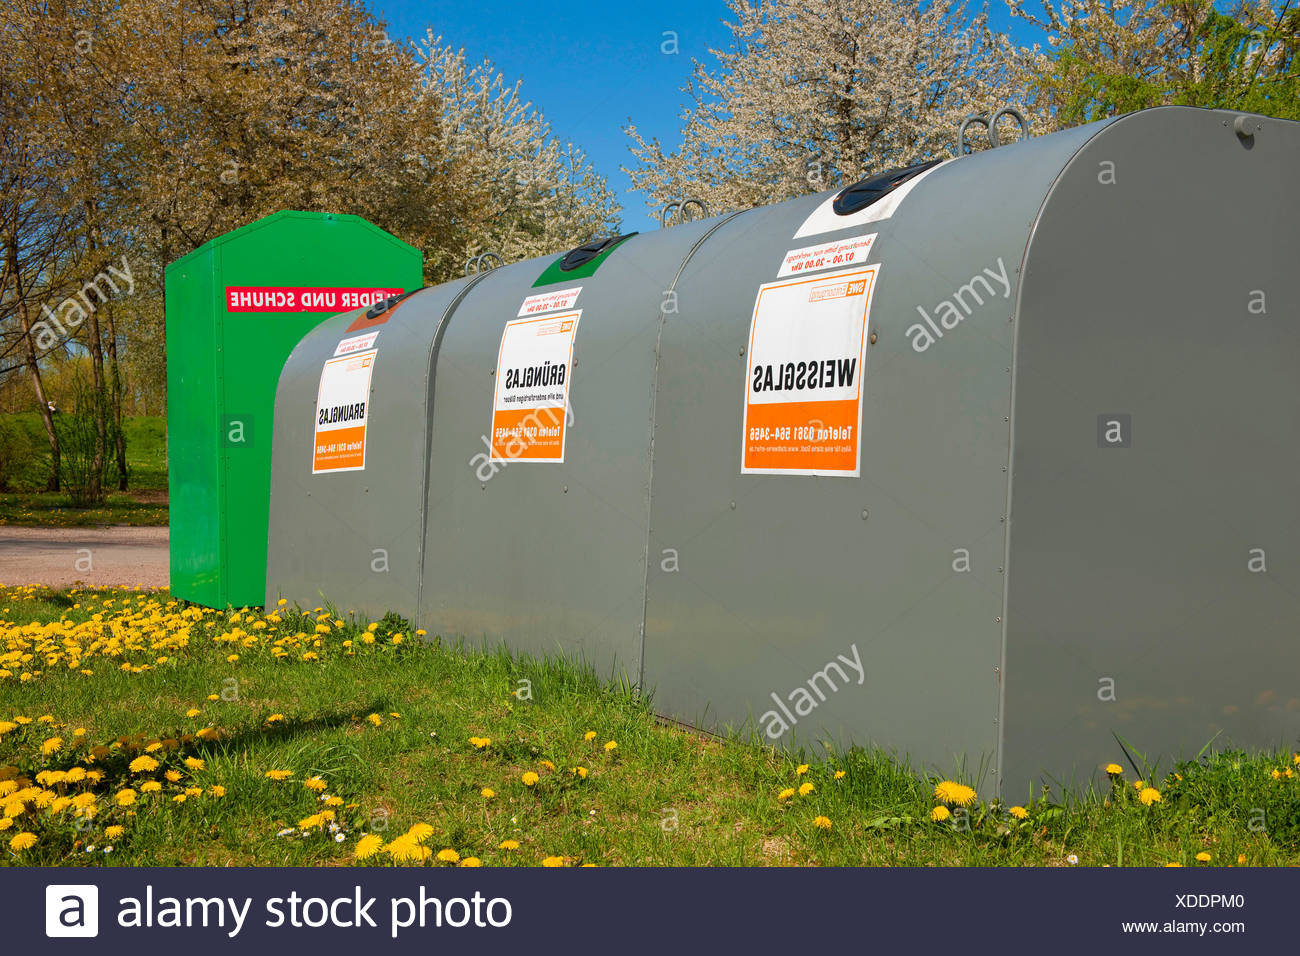 bottle banks and a charity bin, Germany - Stock Image